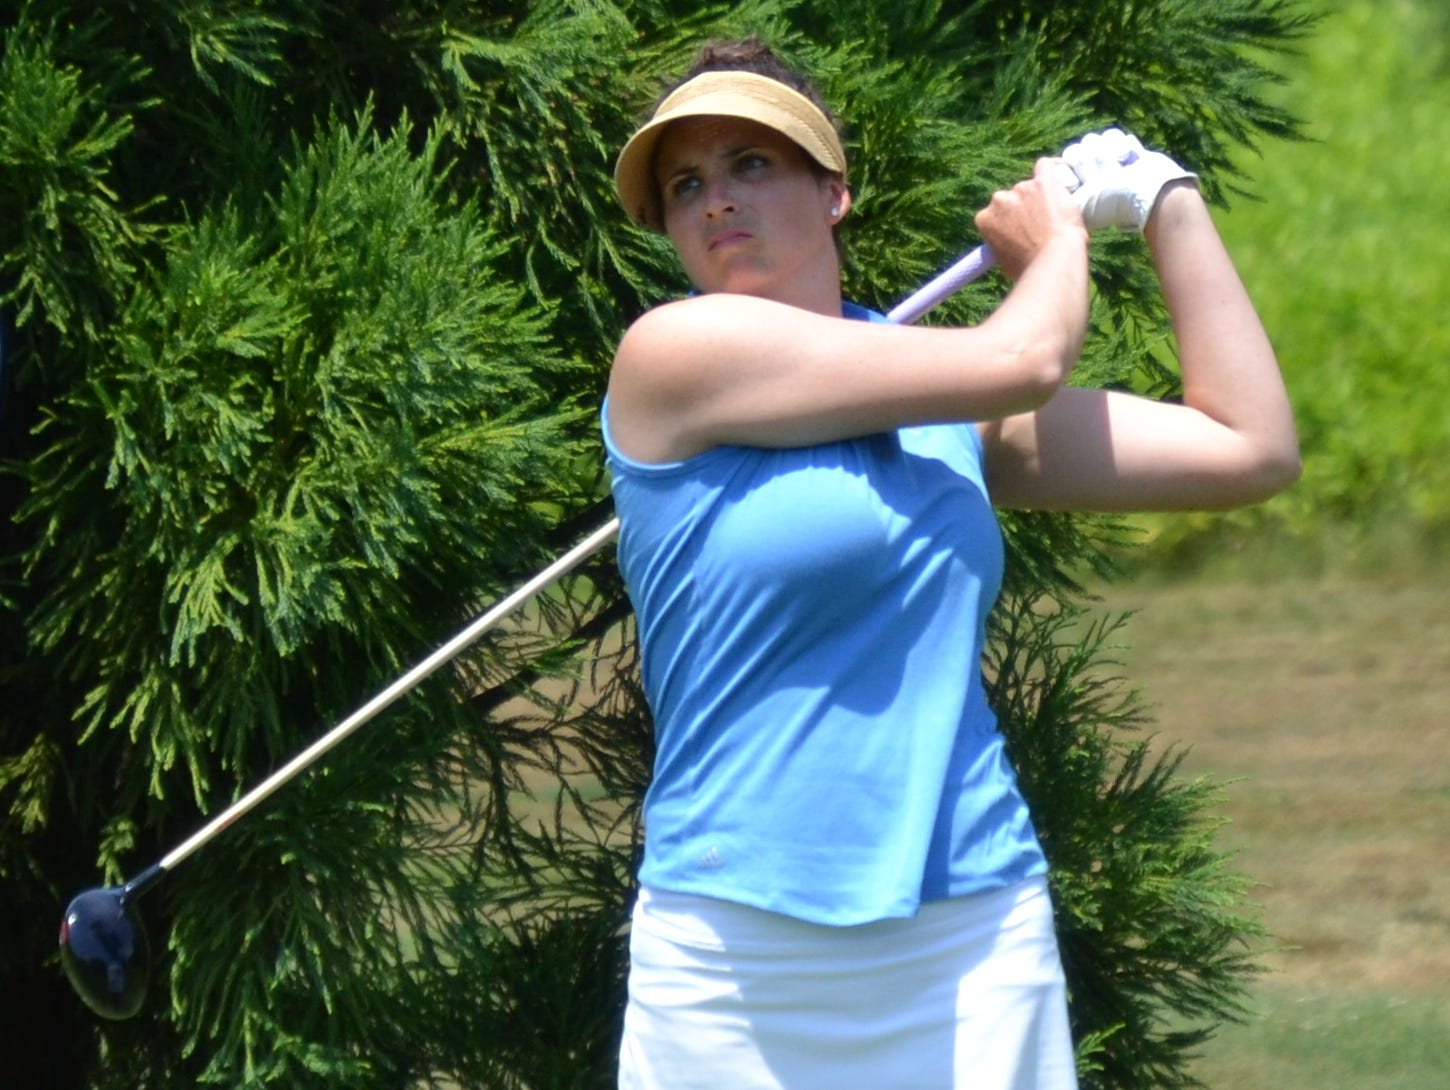 Golf Club of Purchase assistant Renee Skidmore tees off at the 15th hole at Willow Ridge Country Club during the final round of the Lincoln Women's Met Open Championship on Tuesday.